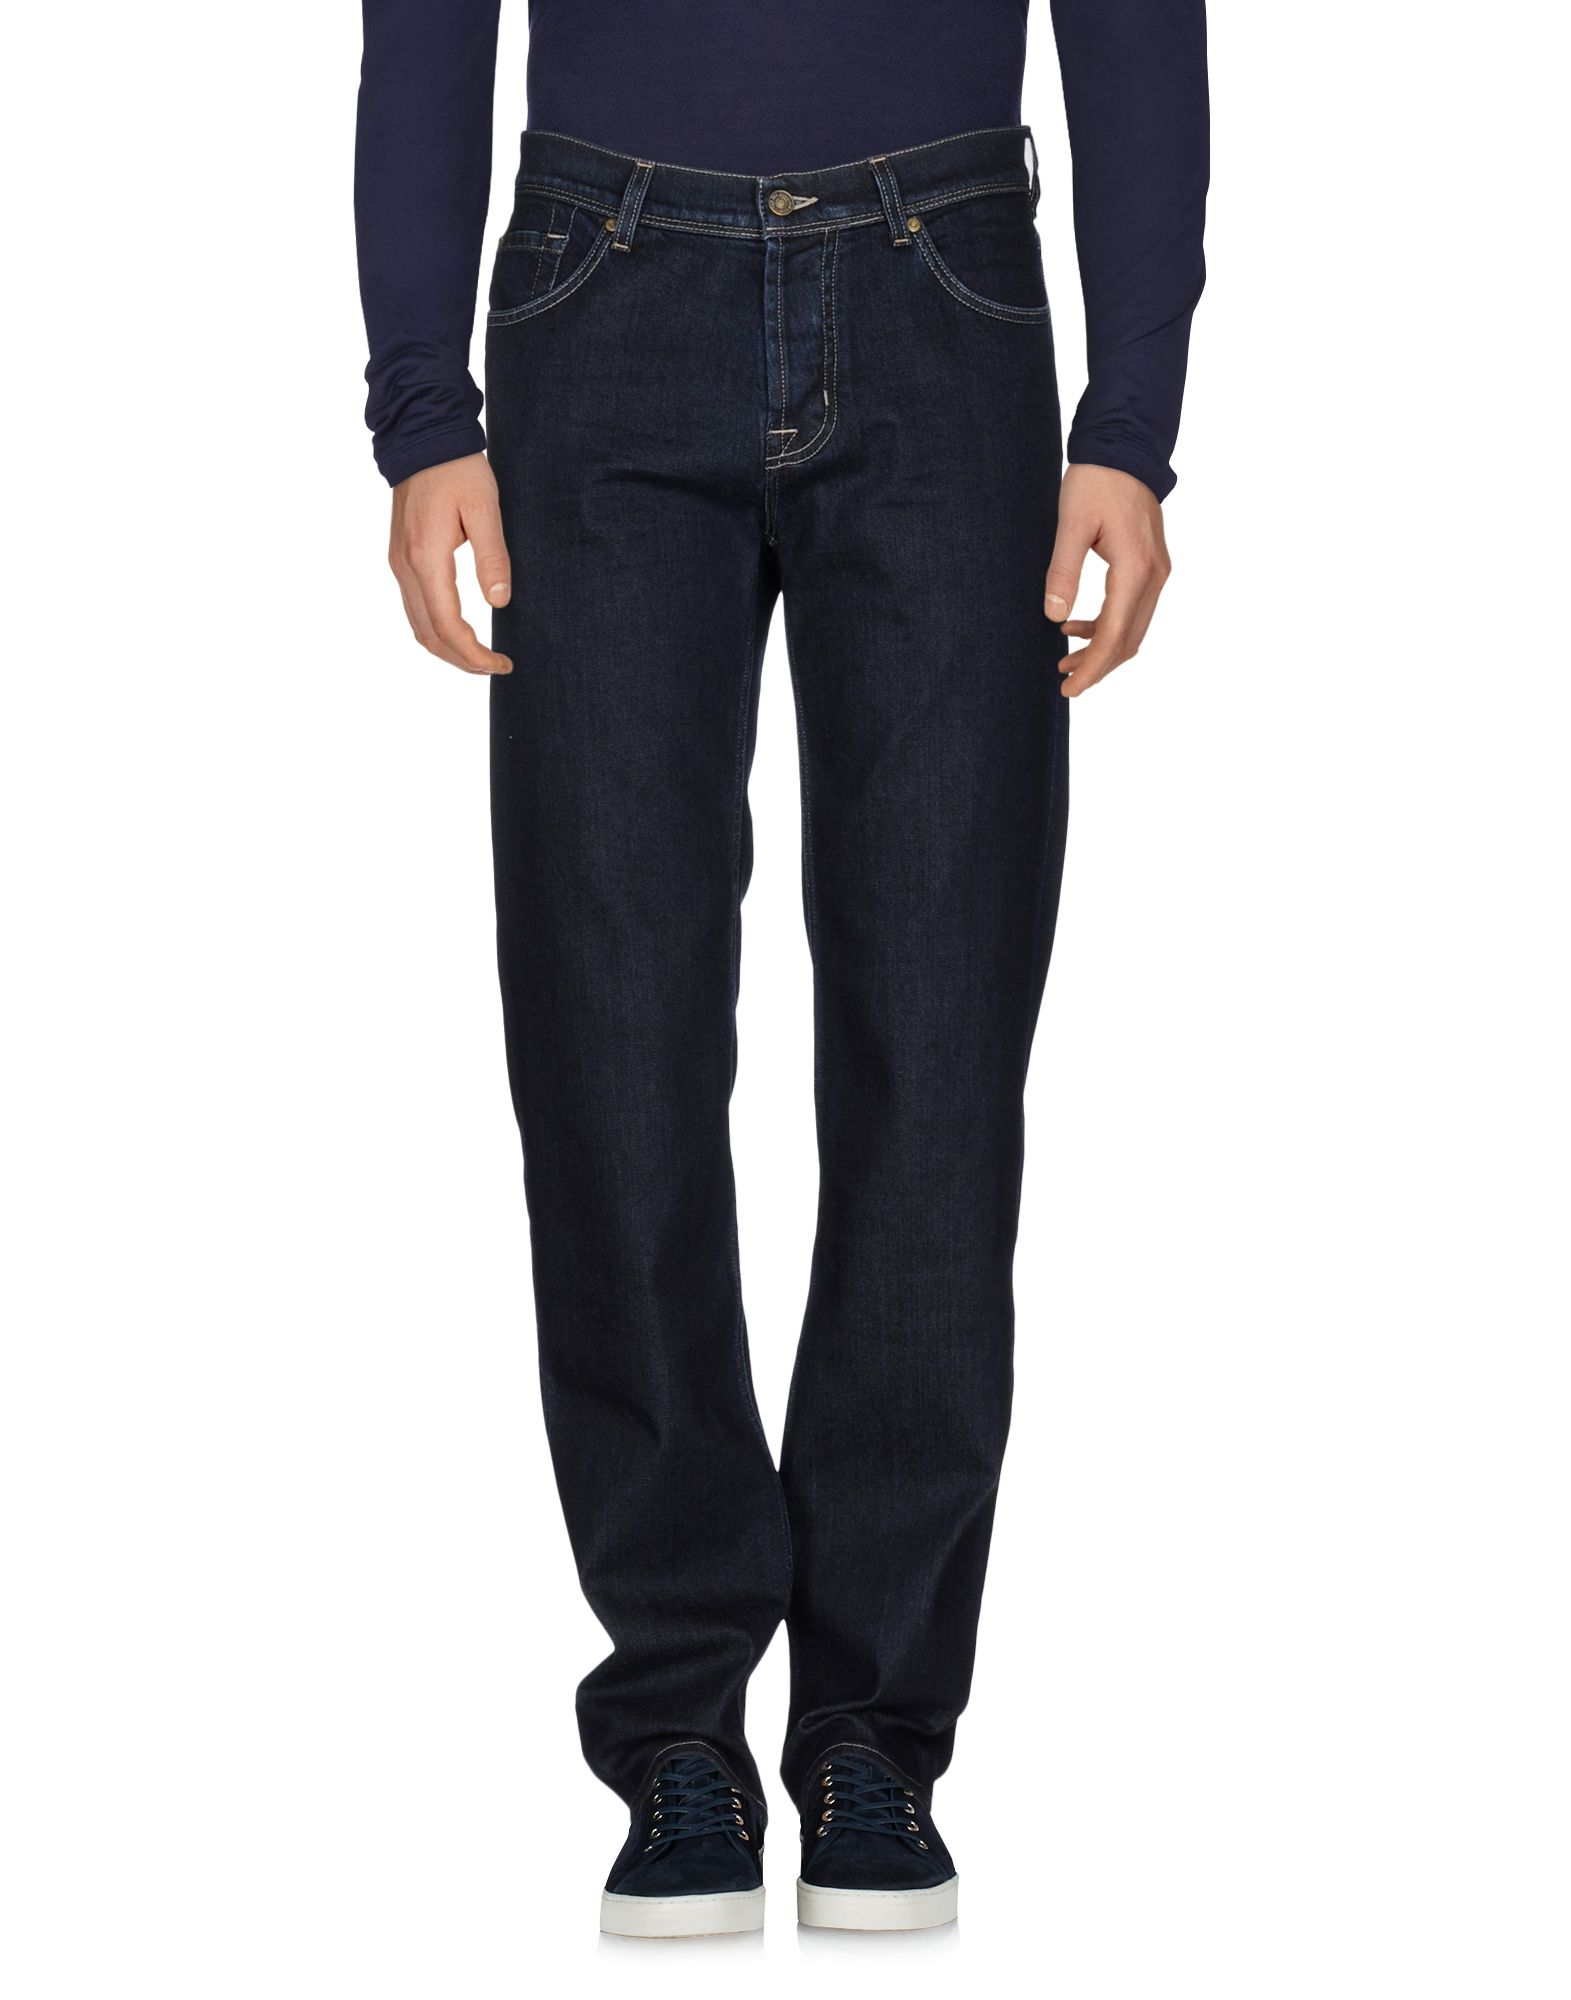 Pantaloni Jeans 7 For All Mankind Uomo 42586735NF - 42586735NF Uomo 683861